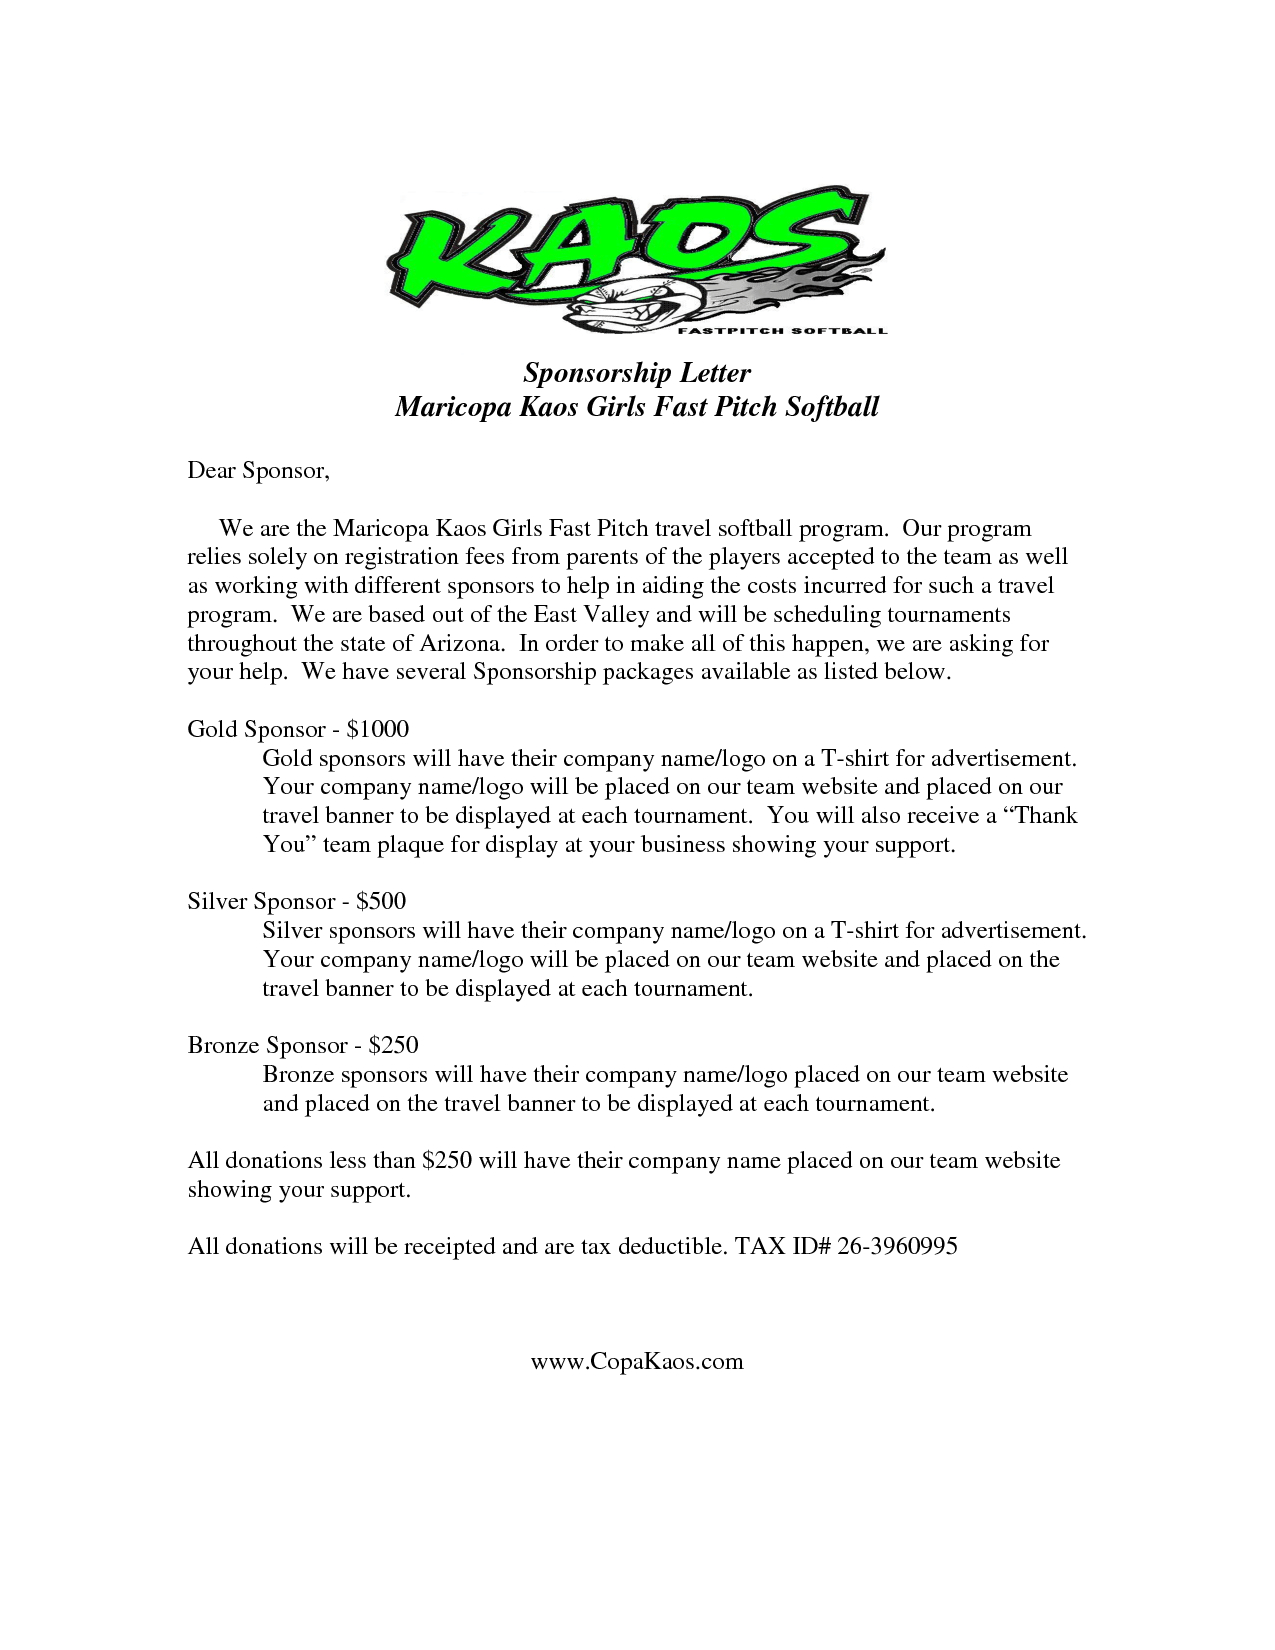 Church Donation Letter for Tax Purposes Template - Image Result for Sample Sponsor Request Letter Donation